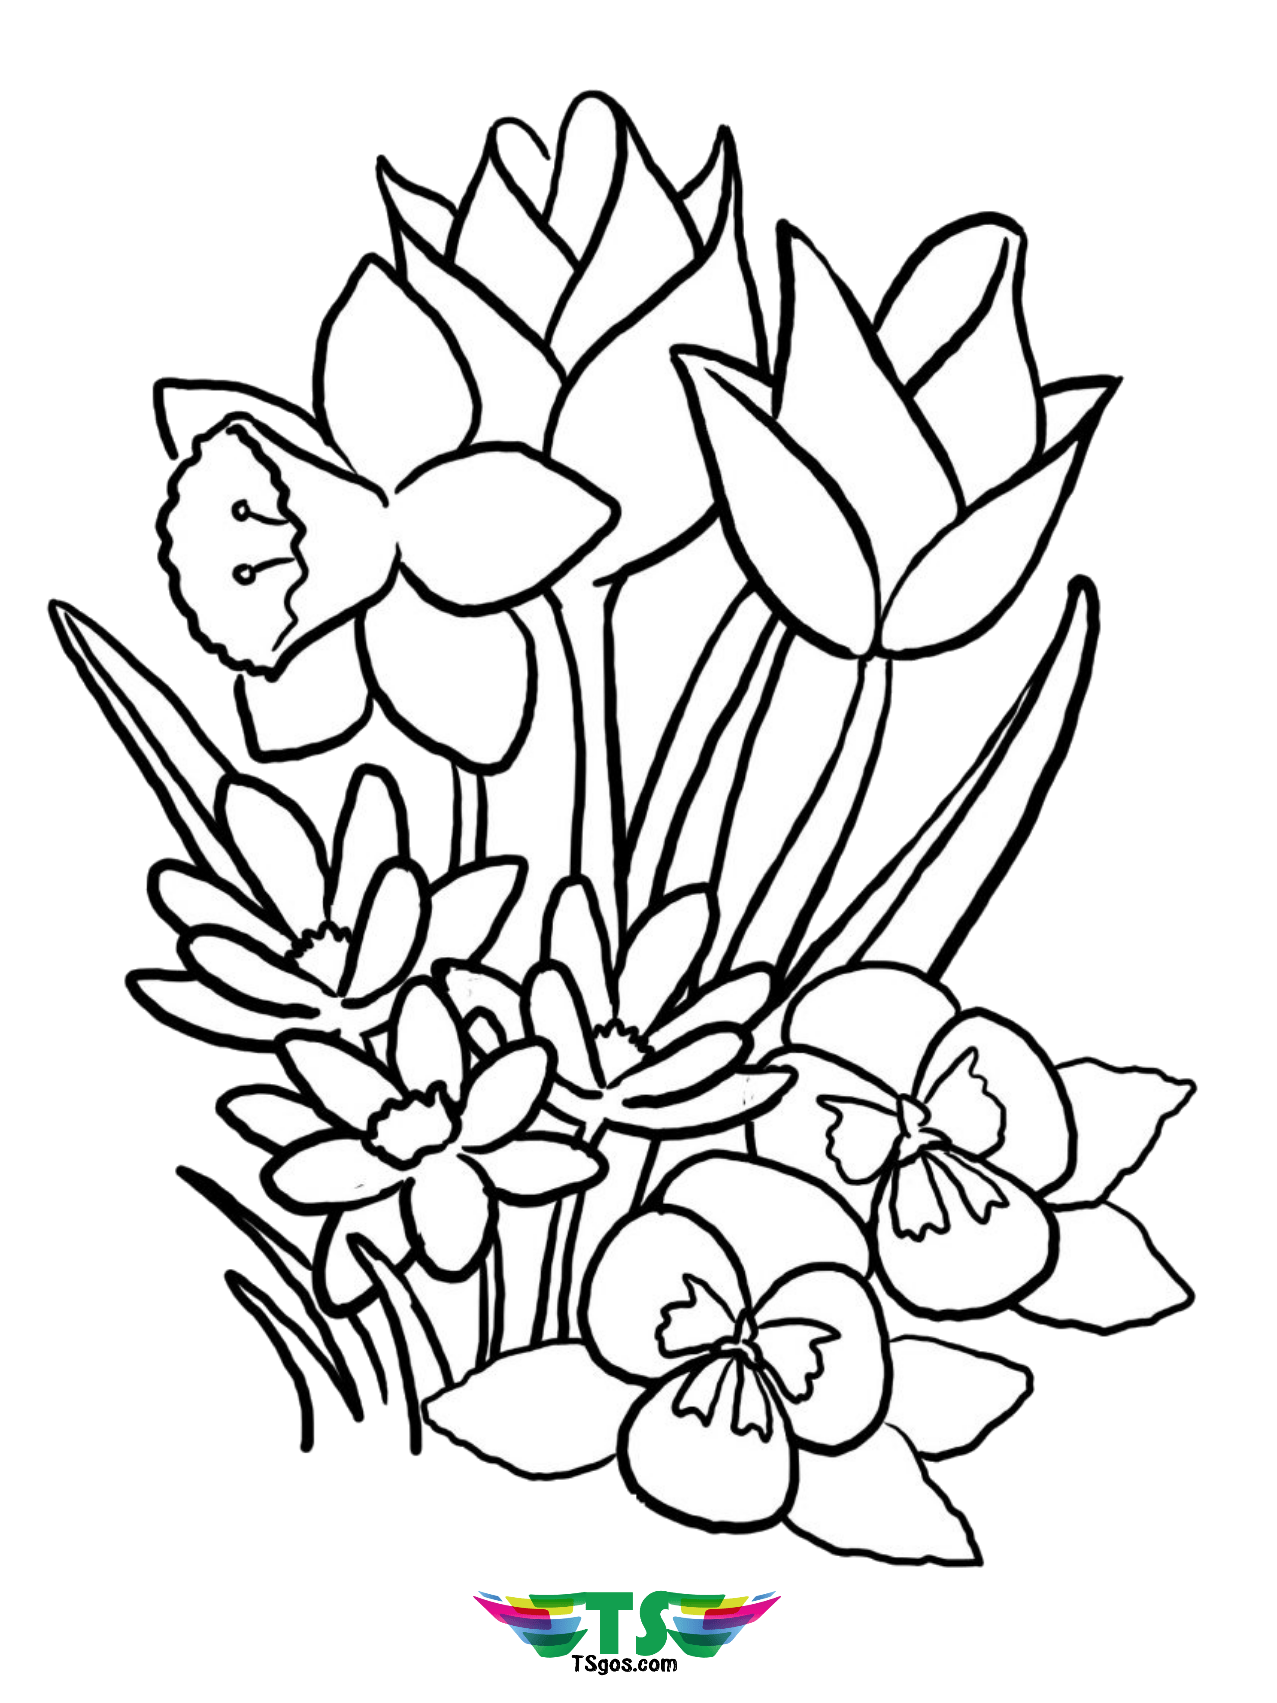 Free Download To Print Beautiful Spring Flower Coloring